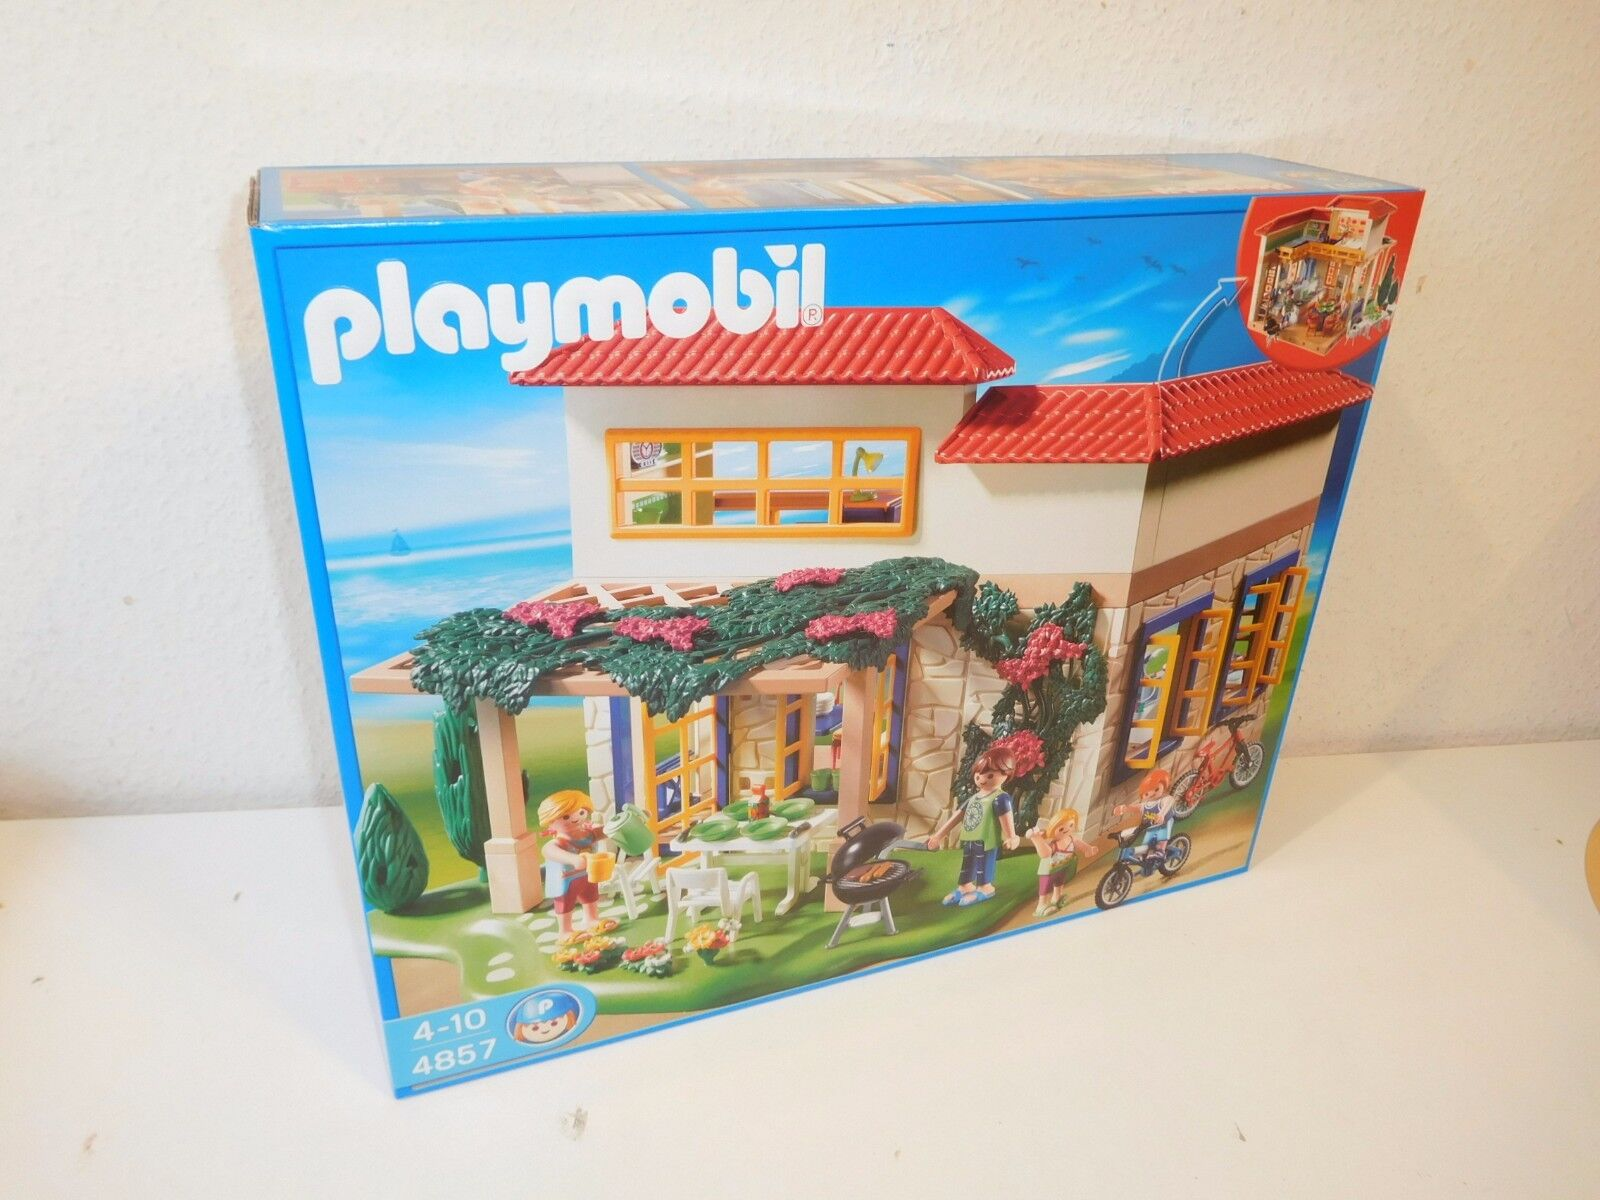 PLAYMOBIL 4857 nuovo NUOVO MISB OVP Holliday House appartaessito vacanze